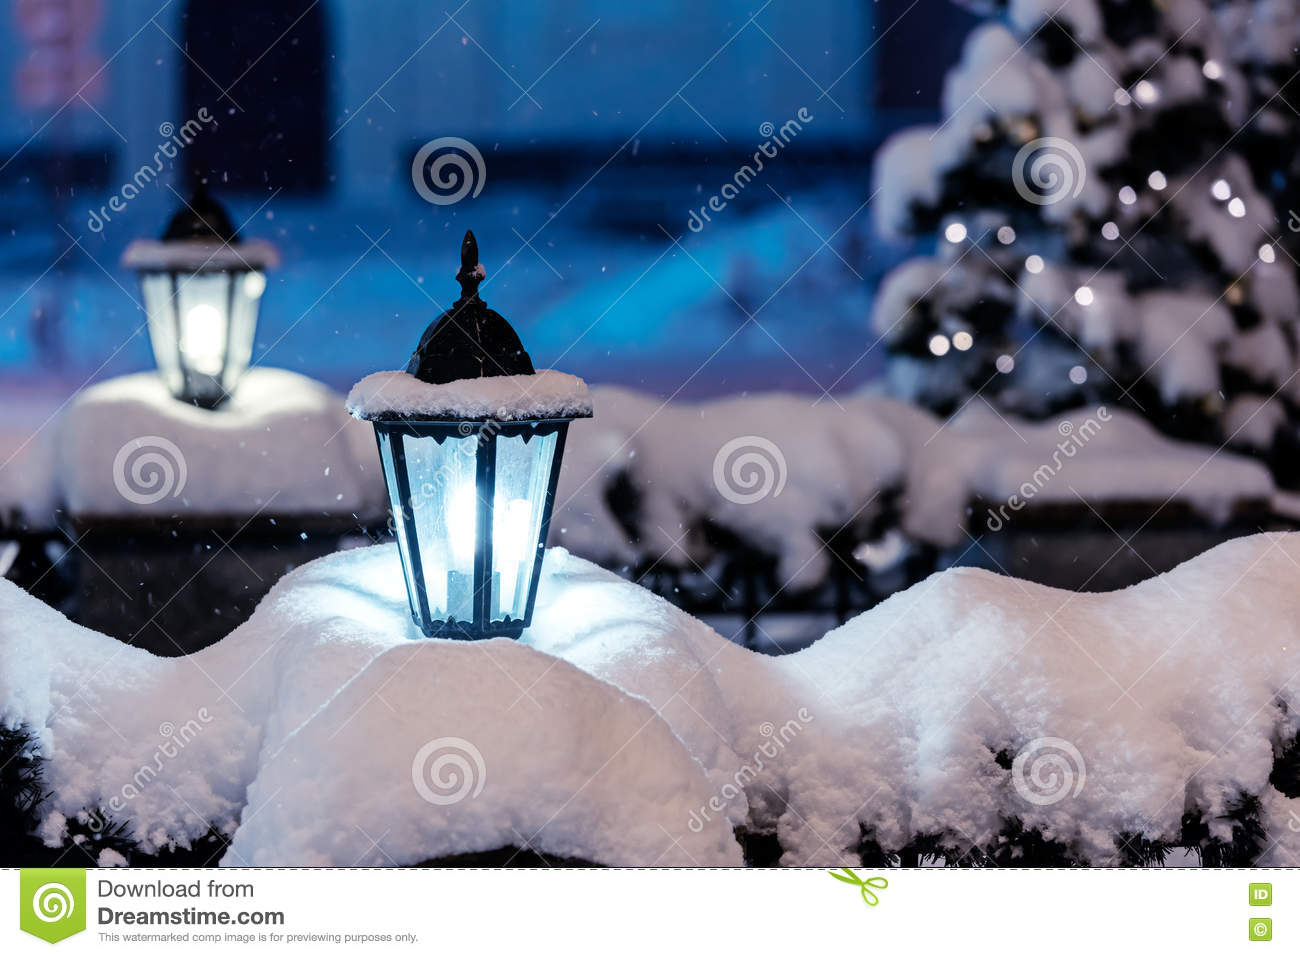 snowy street lamps in night city with fir-tree and christmas lights in background